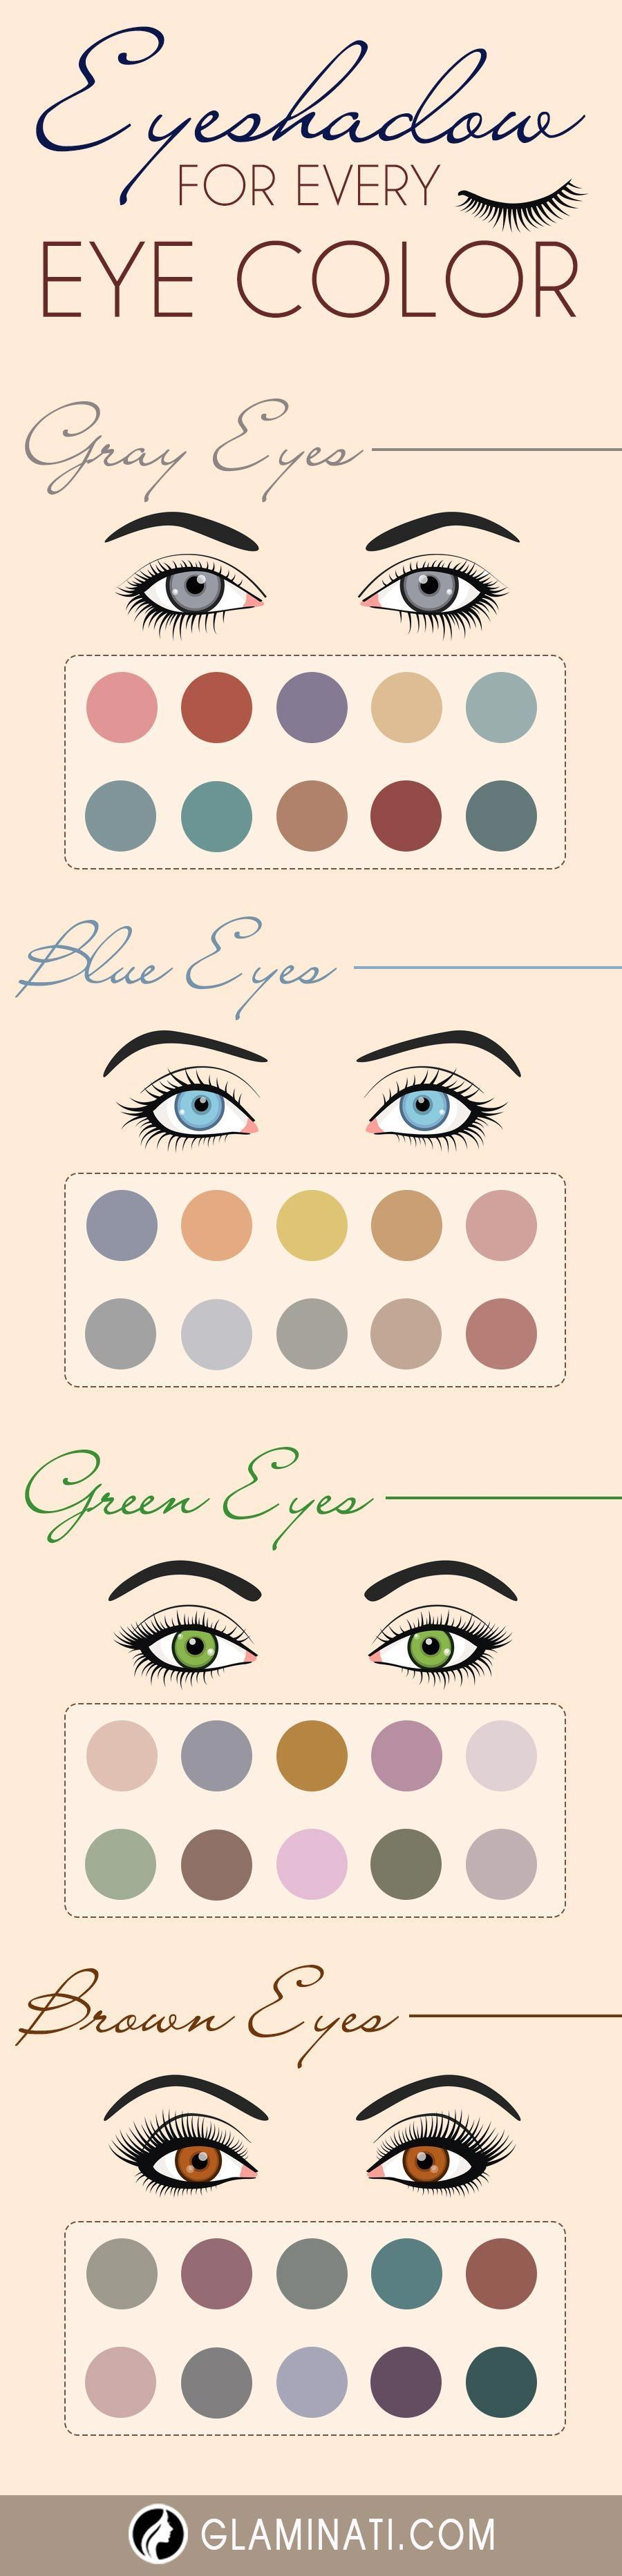 most magical makeup ideas for gray eyes ☆ see more: http